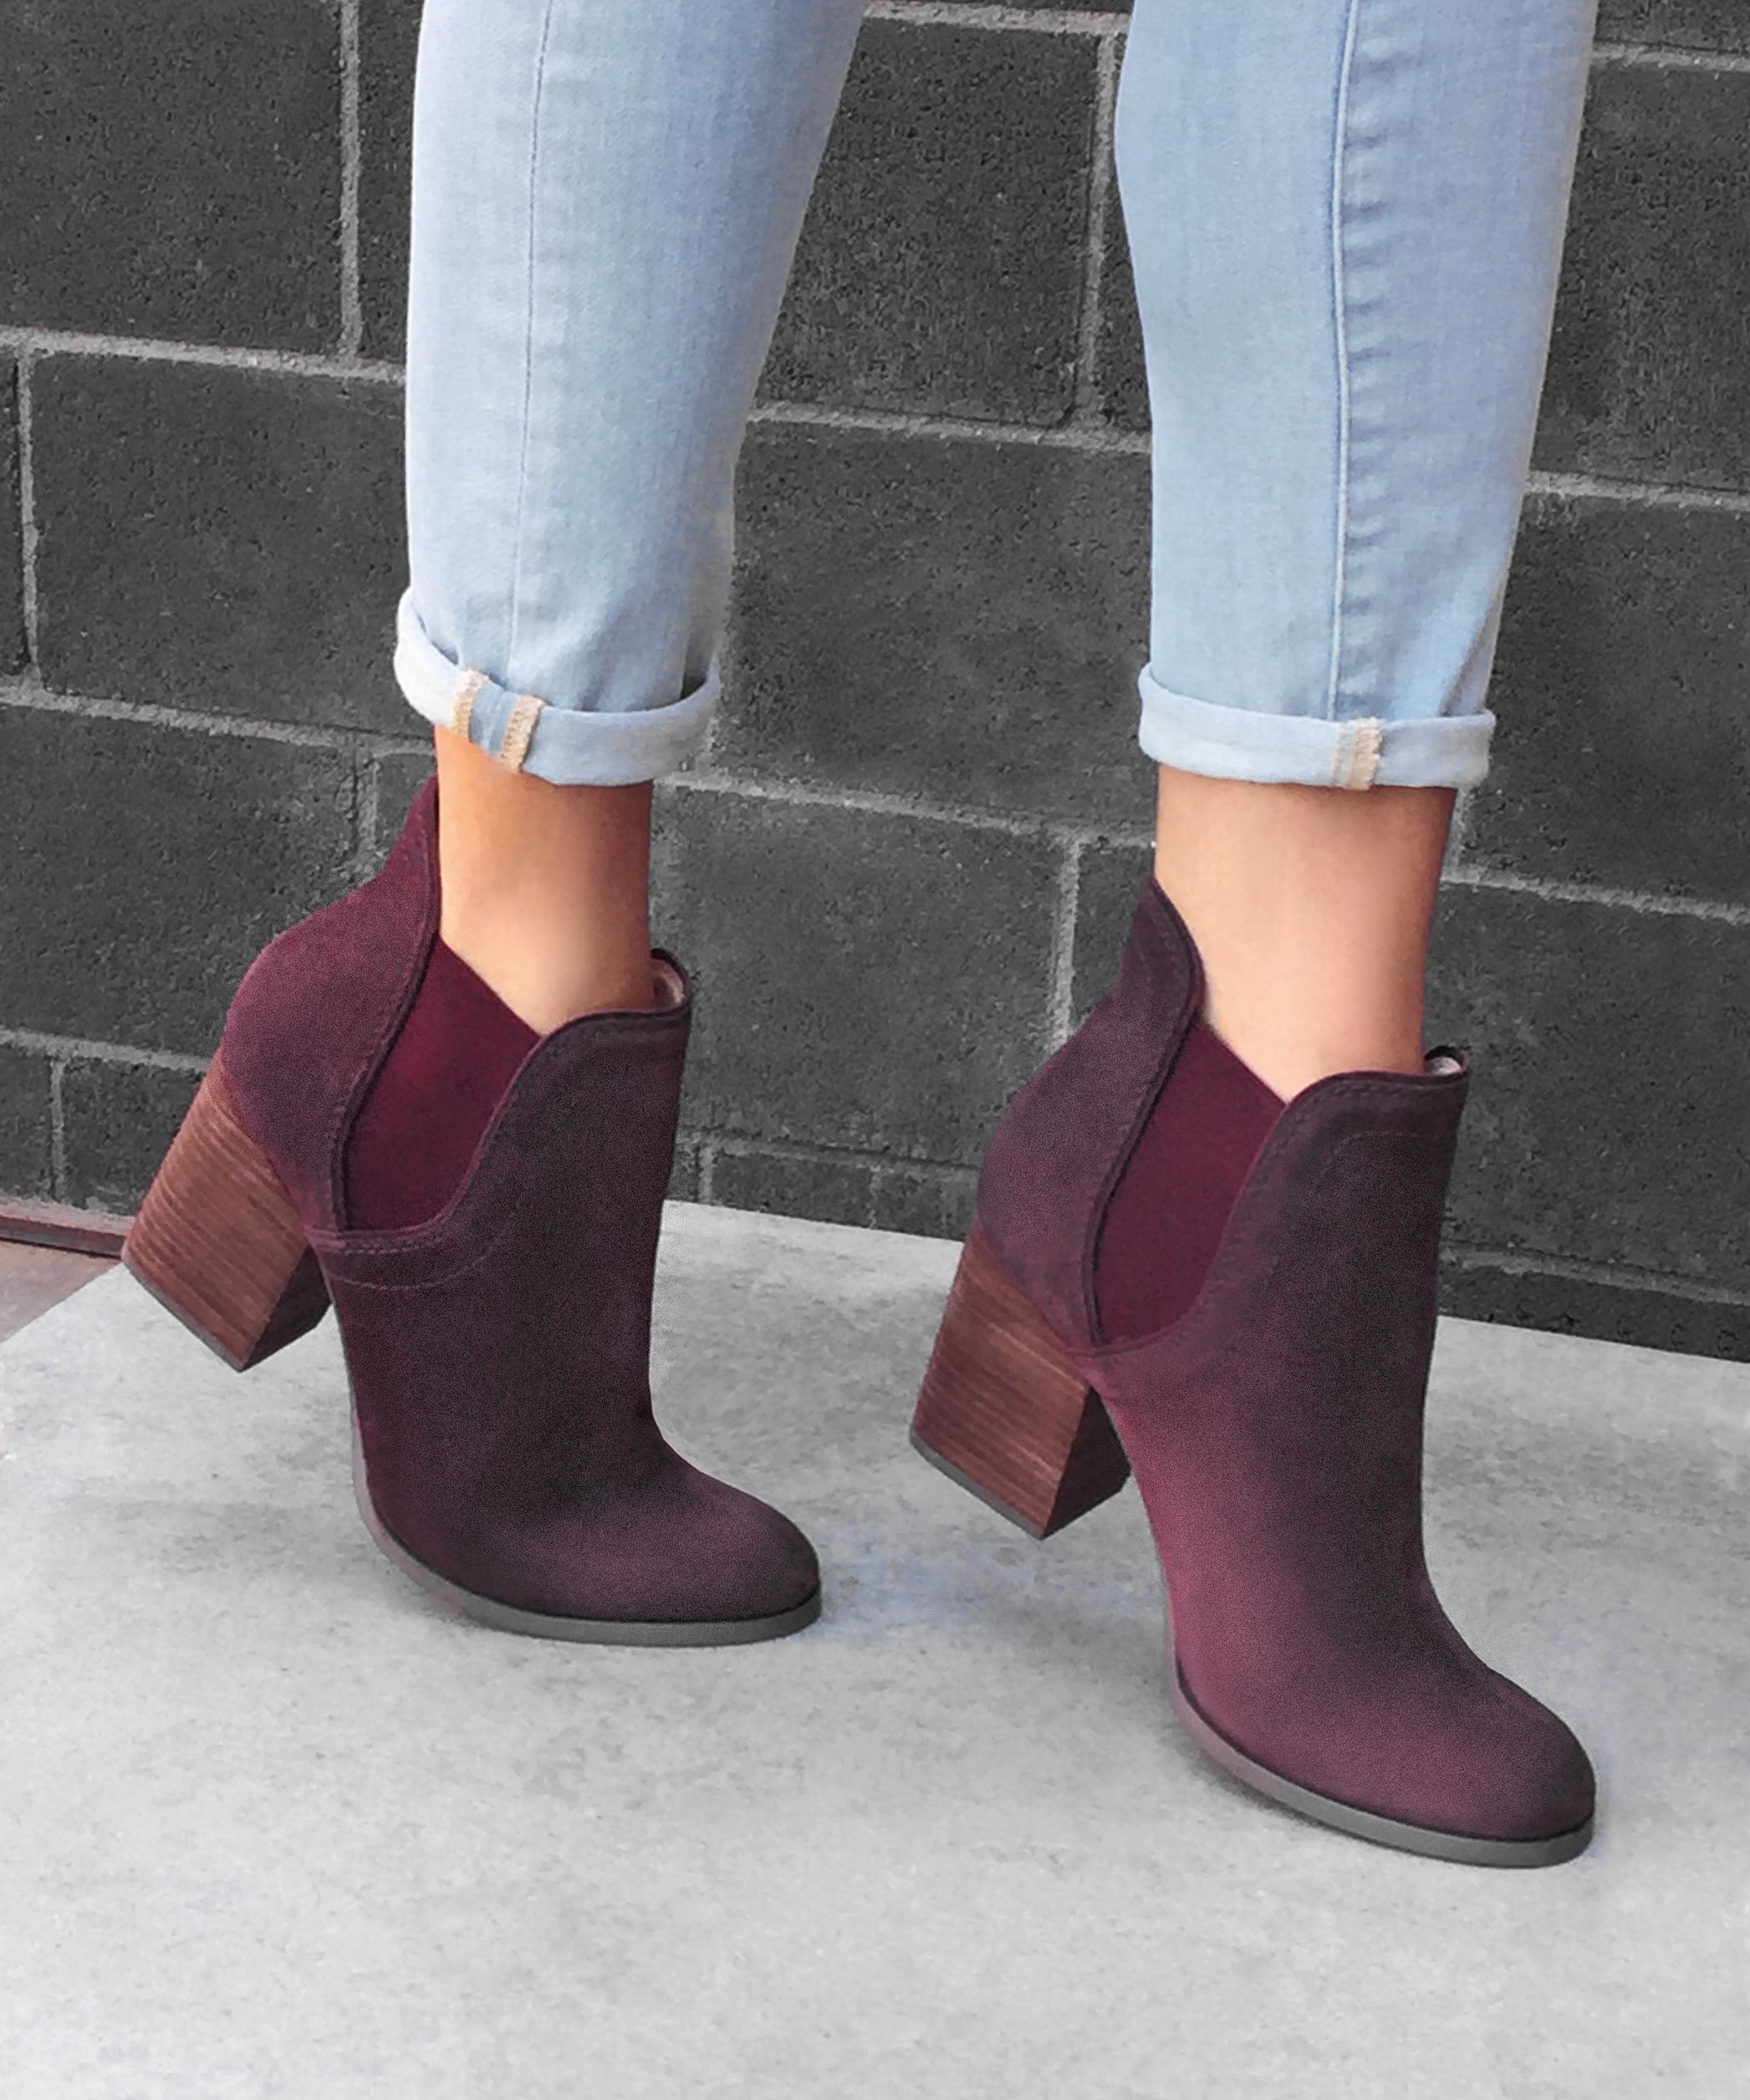 3295080b1cb Suede ankle booties in the perfect wine color for fall